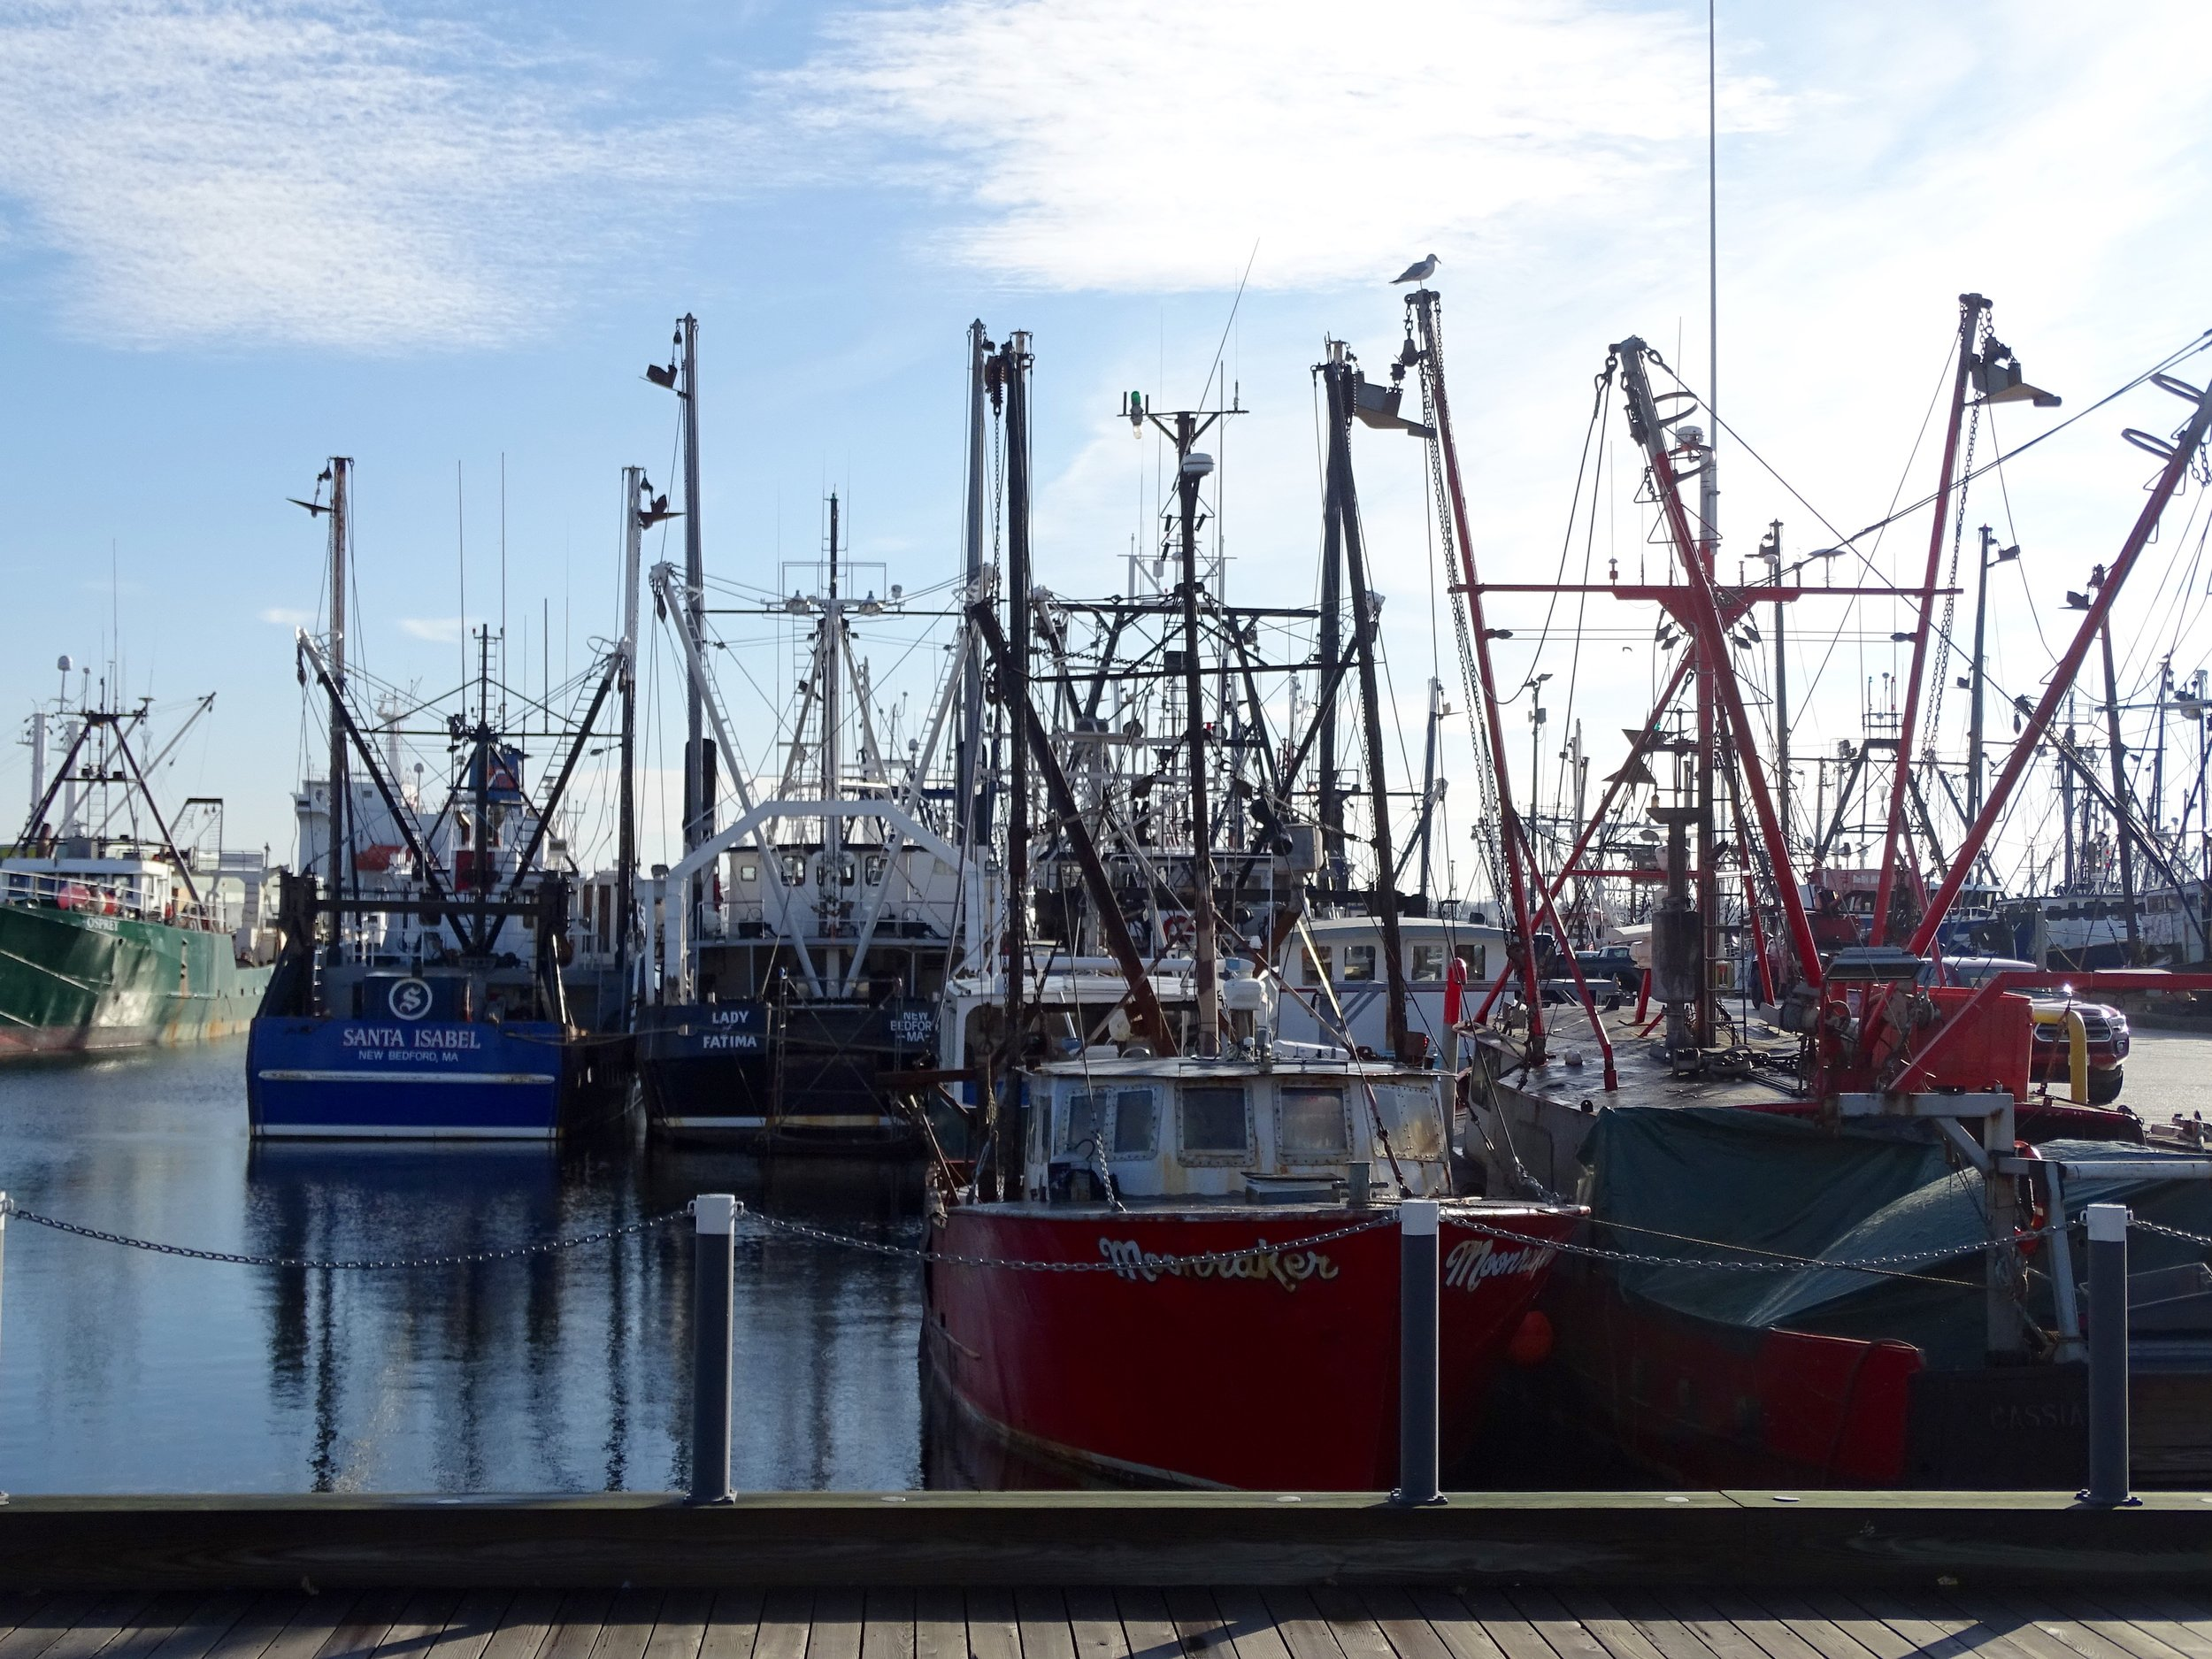 Some of the fishing vessels docked in the New Bedford Harbor.